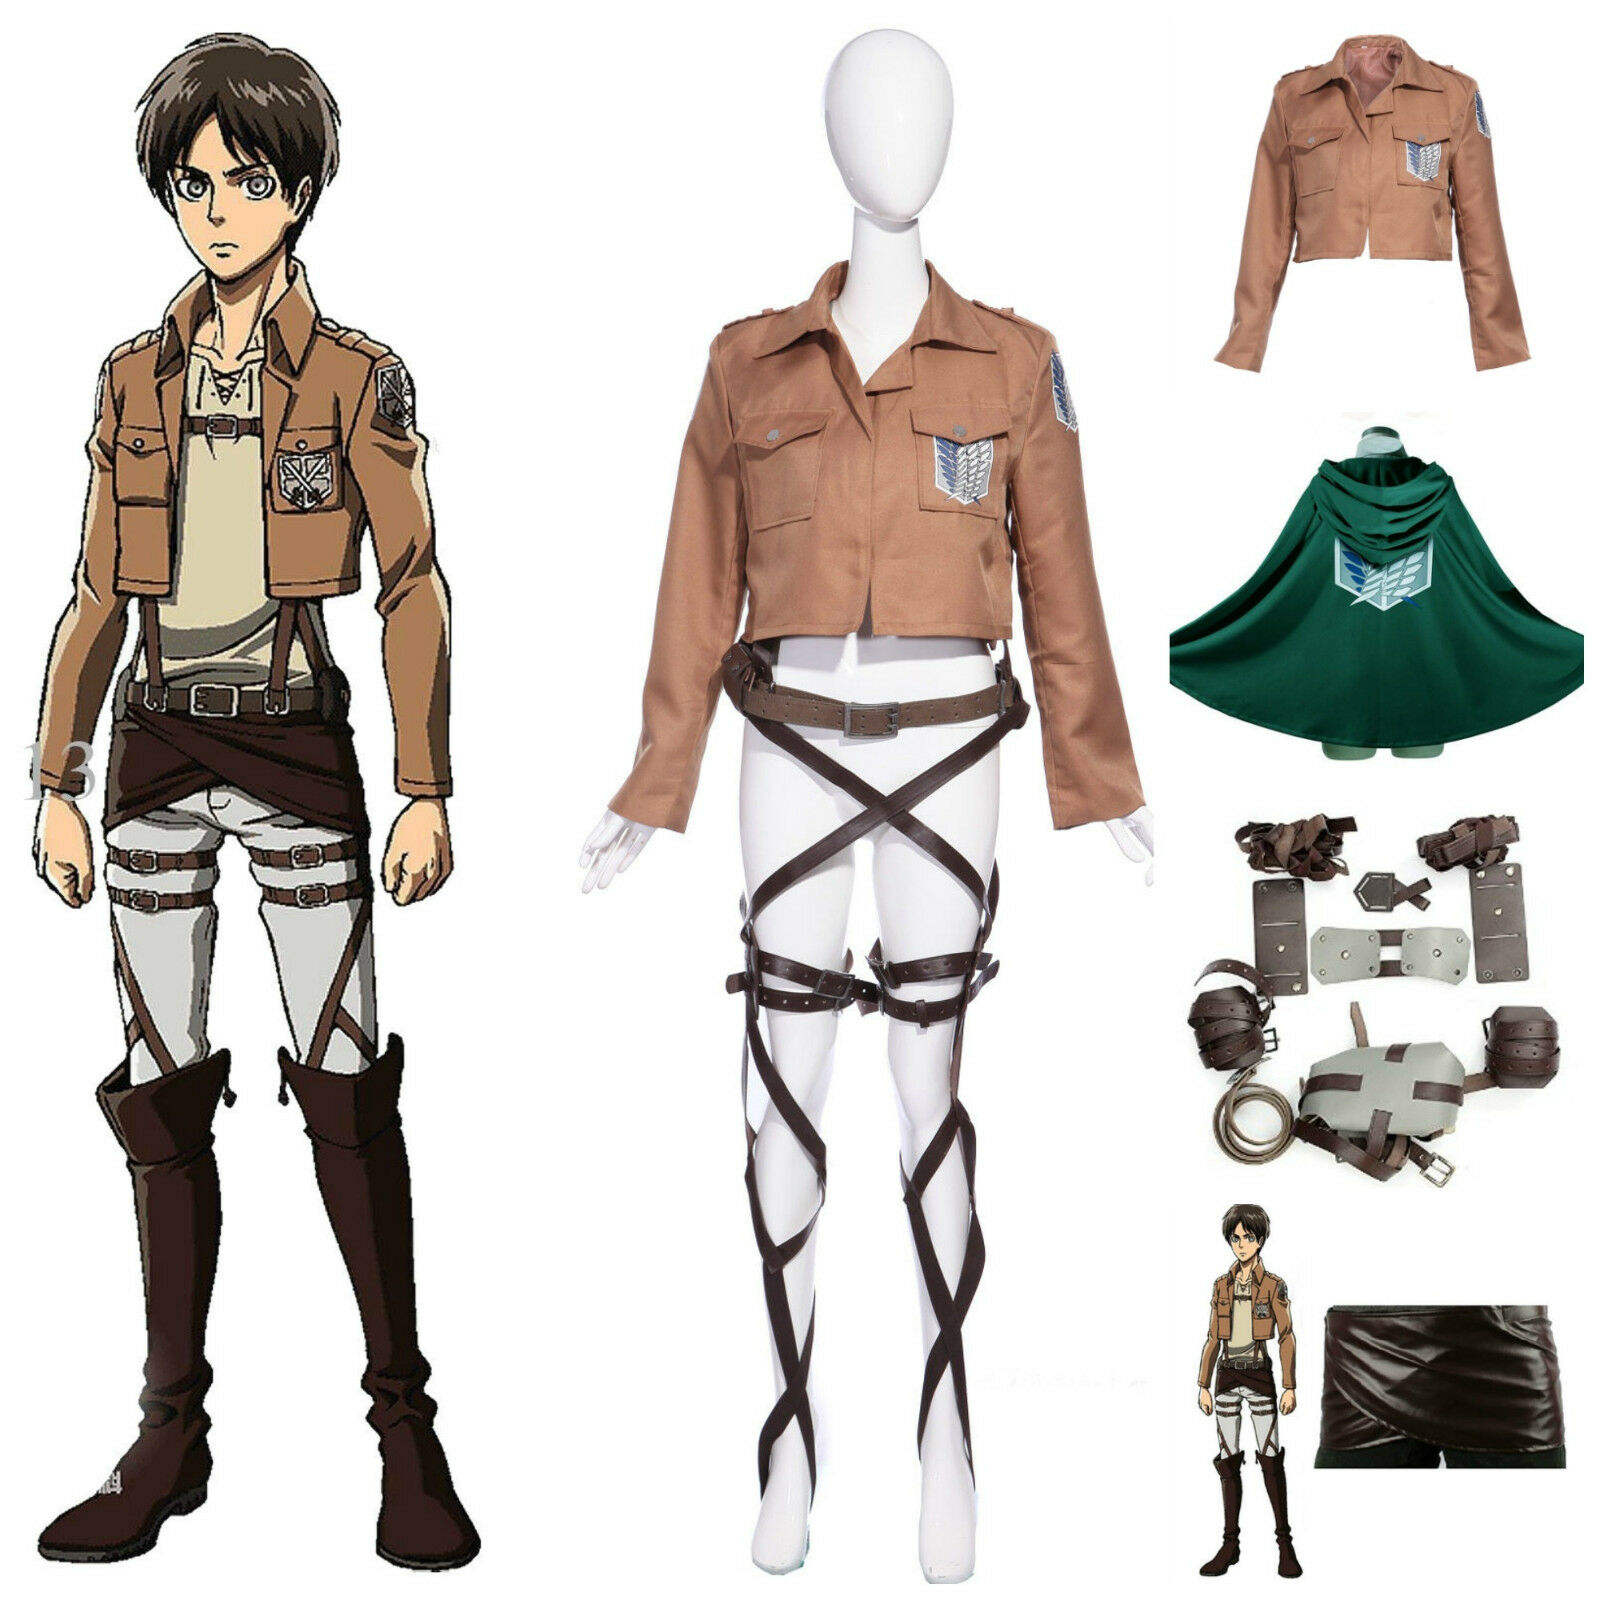 Ecoparty Deluxe Attack on Titan Costume Set Jacket Cape Belt Shingeki No Kyojin Cosplay